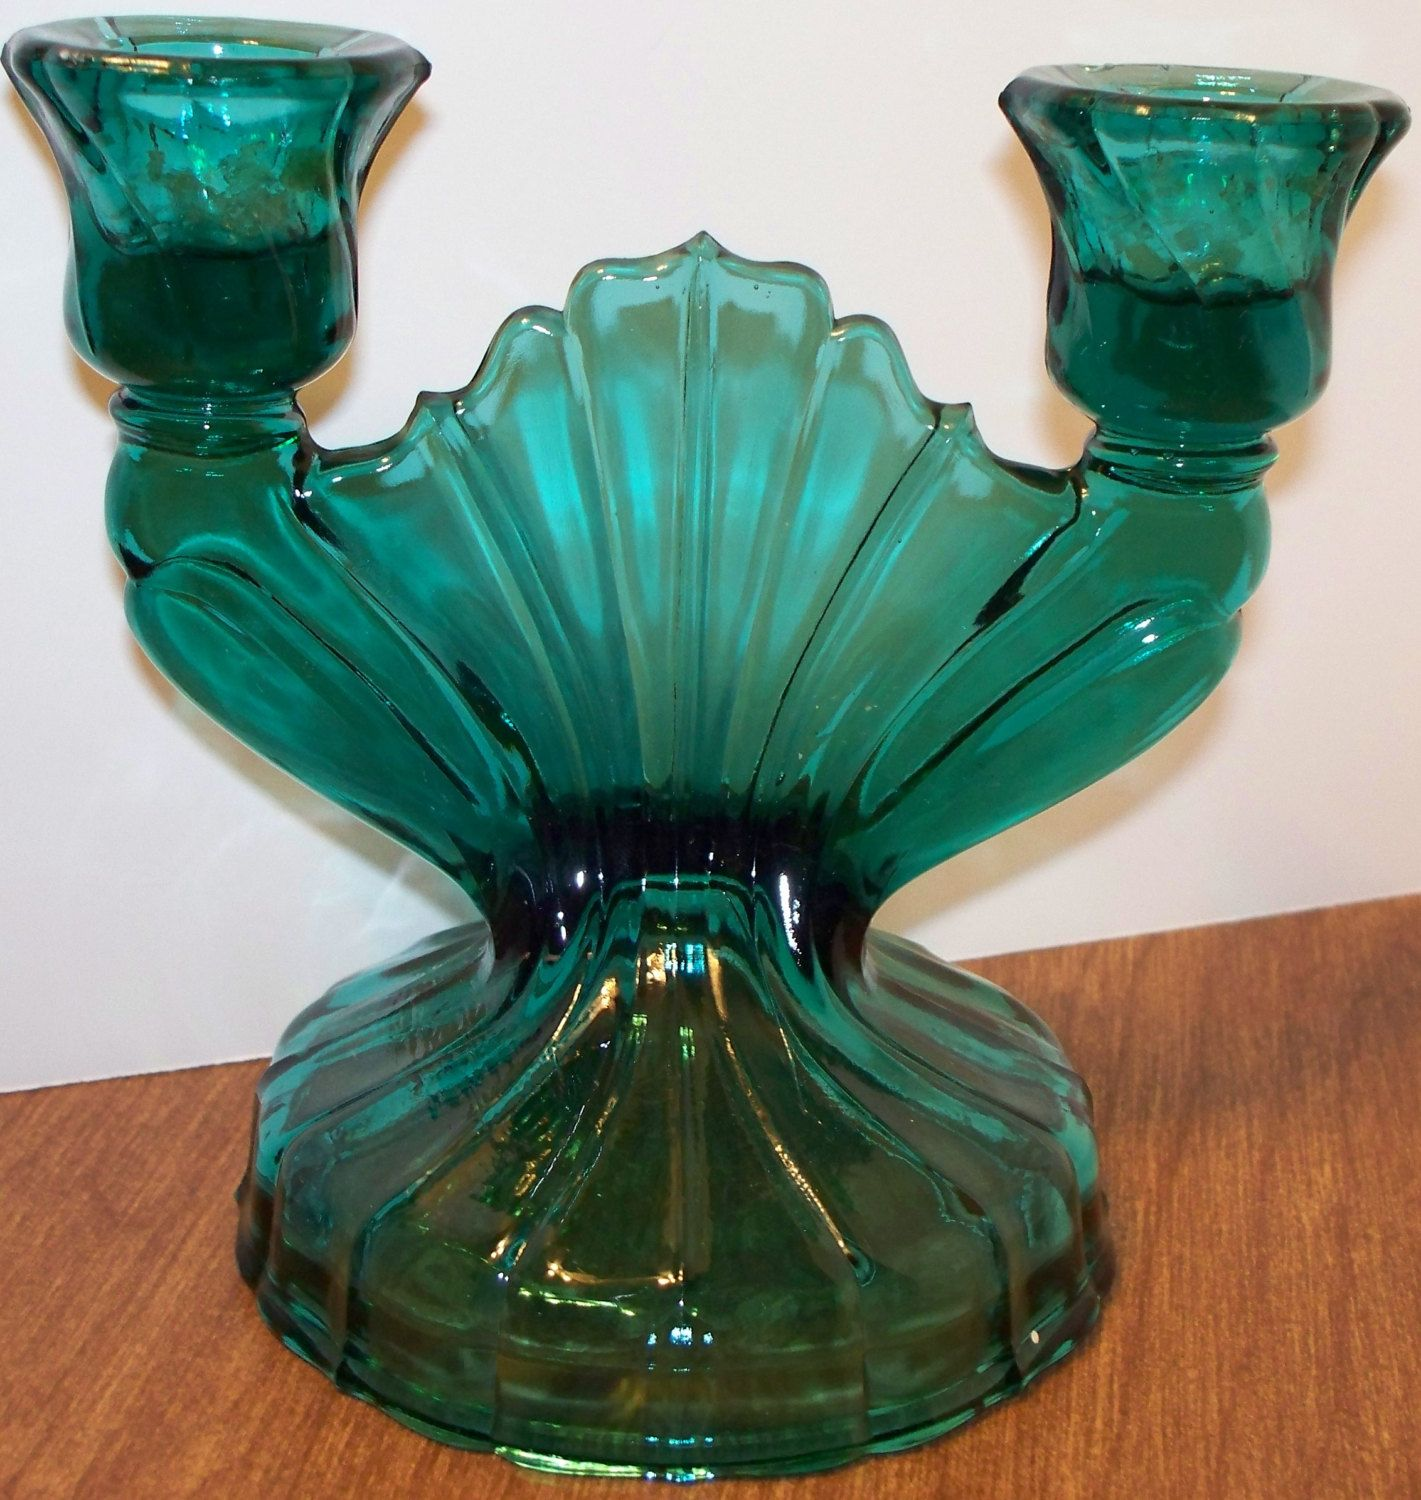 Vintage depression glass double candlestick jeanette glass company vintage depression glass double candlestick jeanette glass company teal glass candle holder candlabra swirled blue green glass reviewsmspy